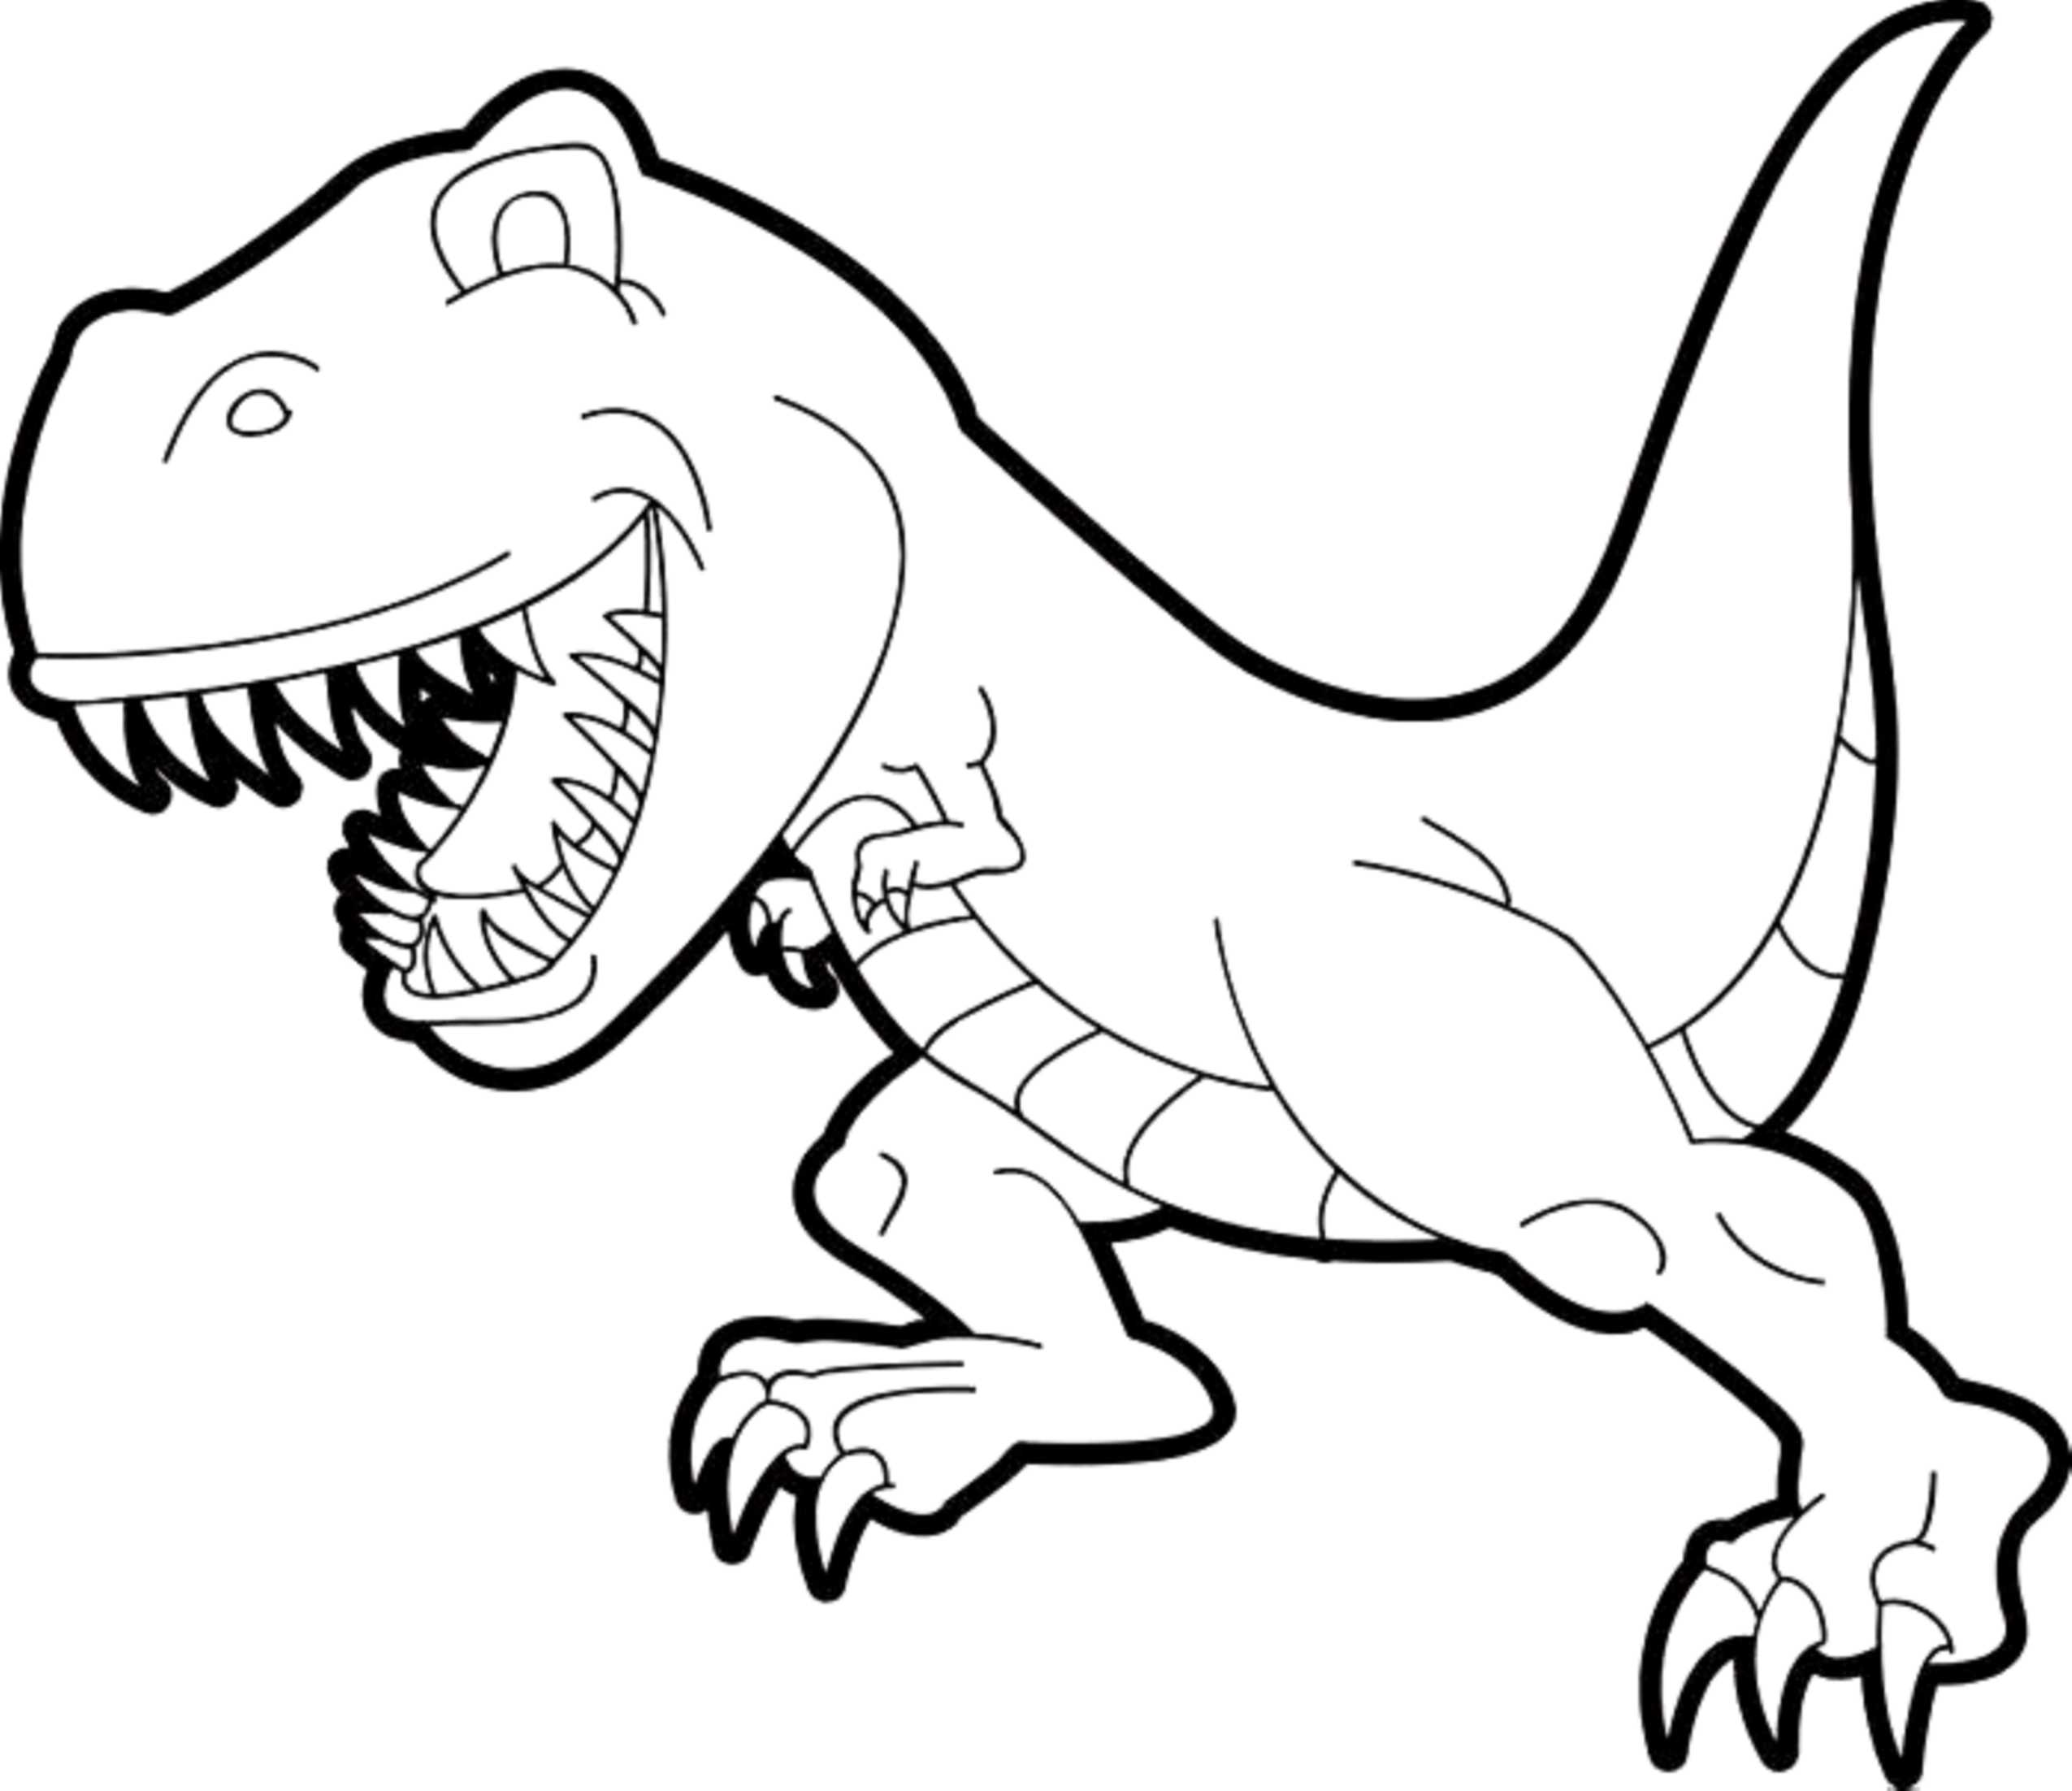 Cute tyrannosaurus rex coloring pages printable kids colouring